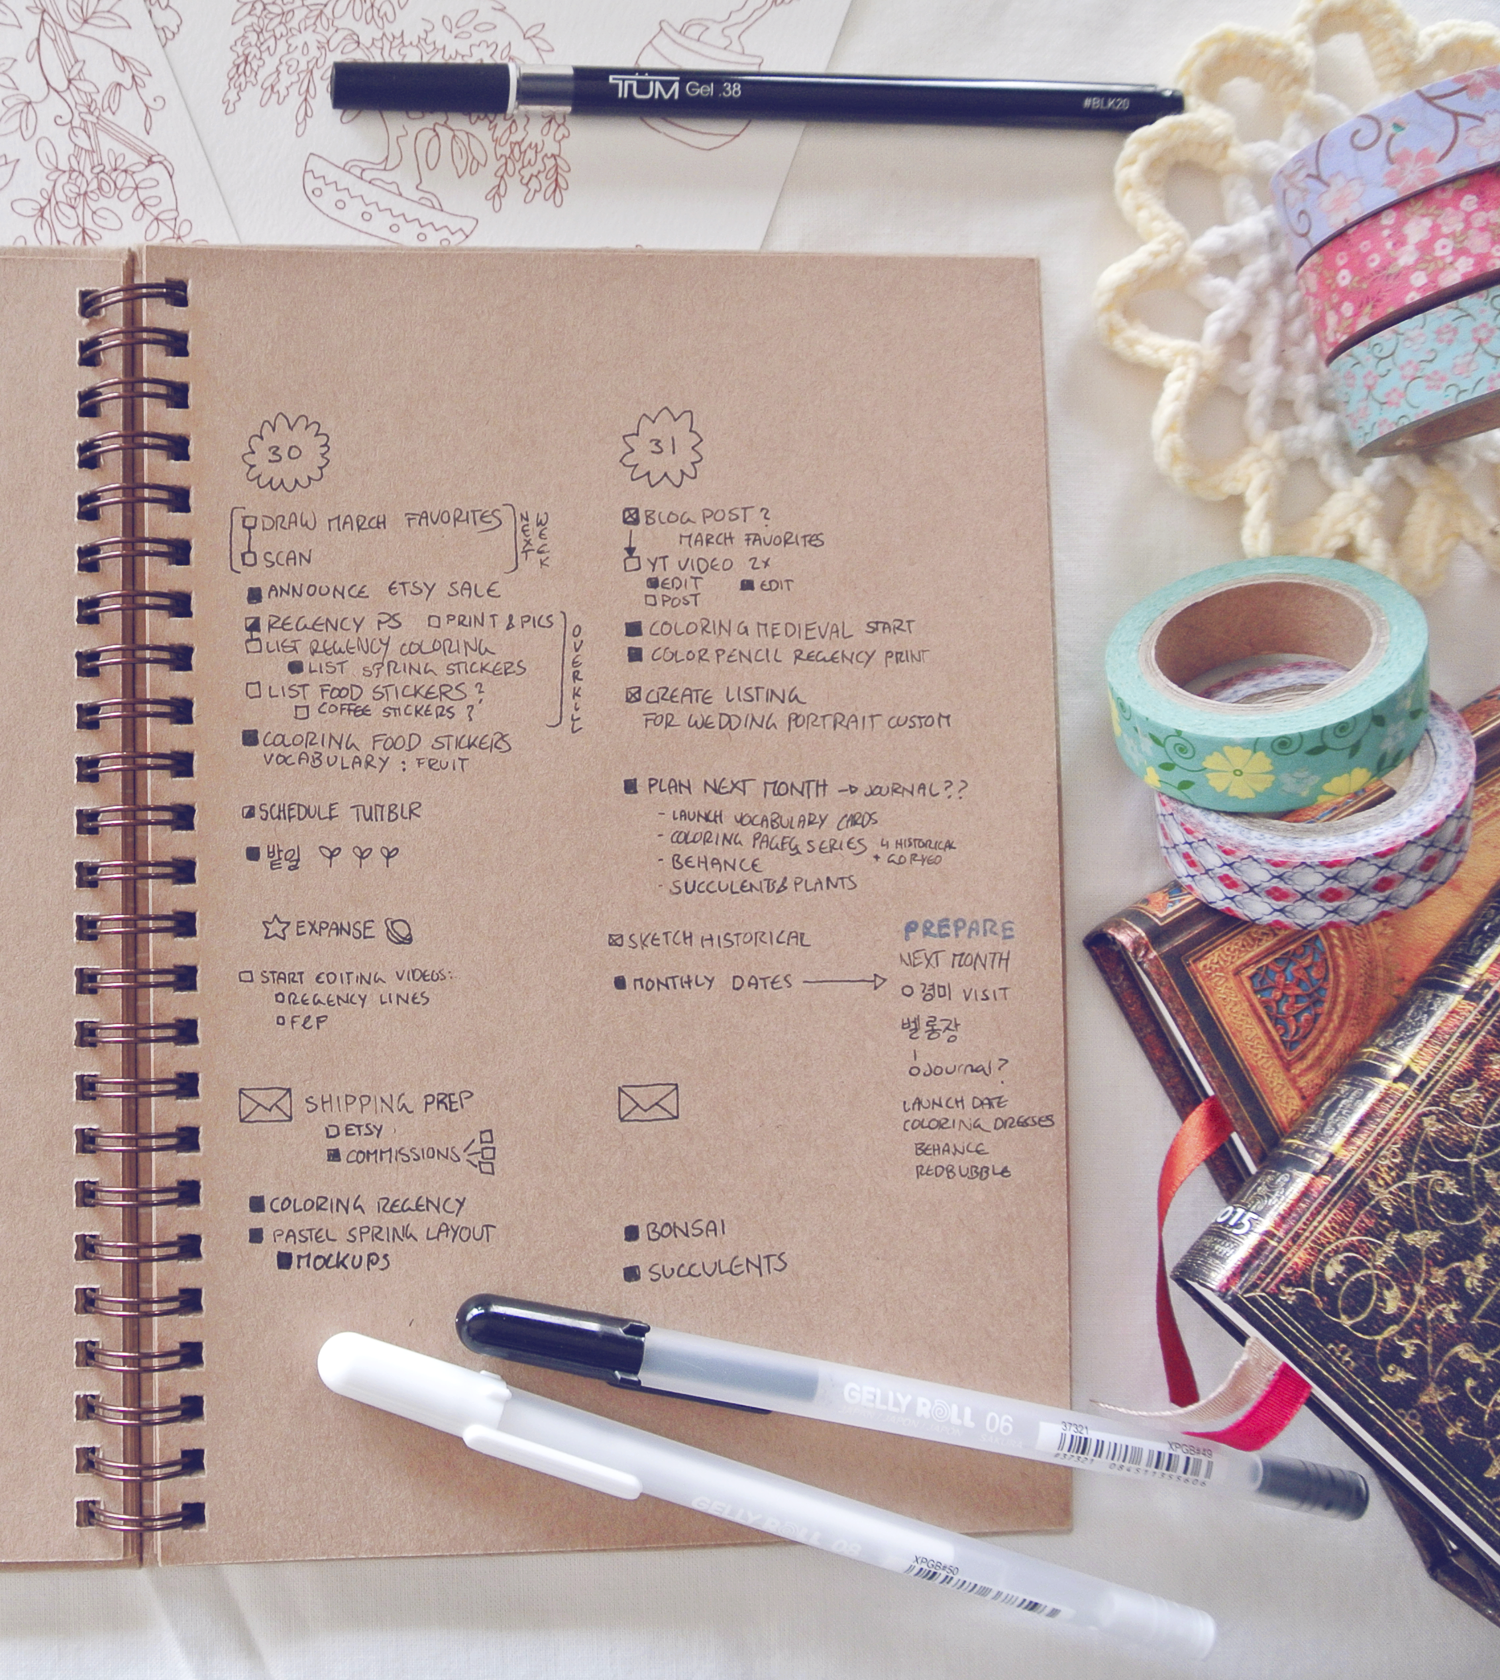 My To-Do lists hurt my head... bullet journaling really helps with being productive and not getting overwhelmed by large tasks!